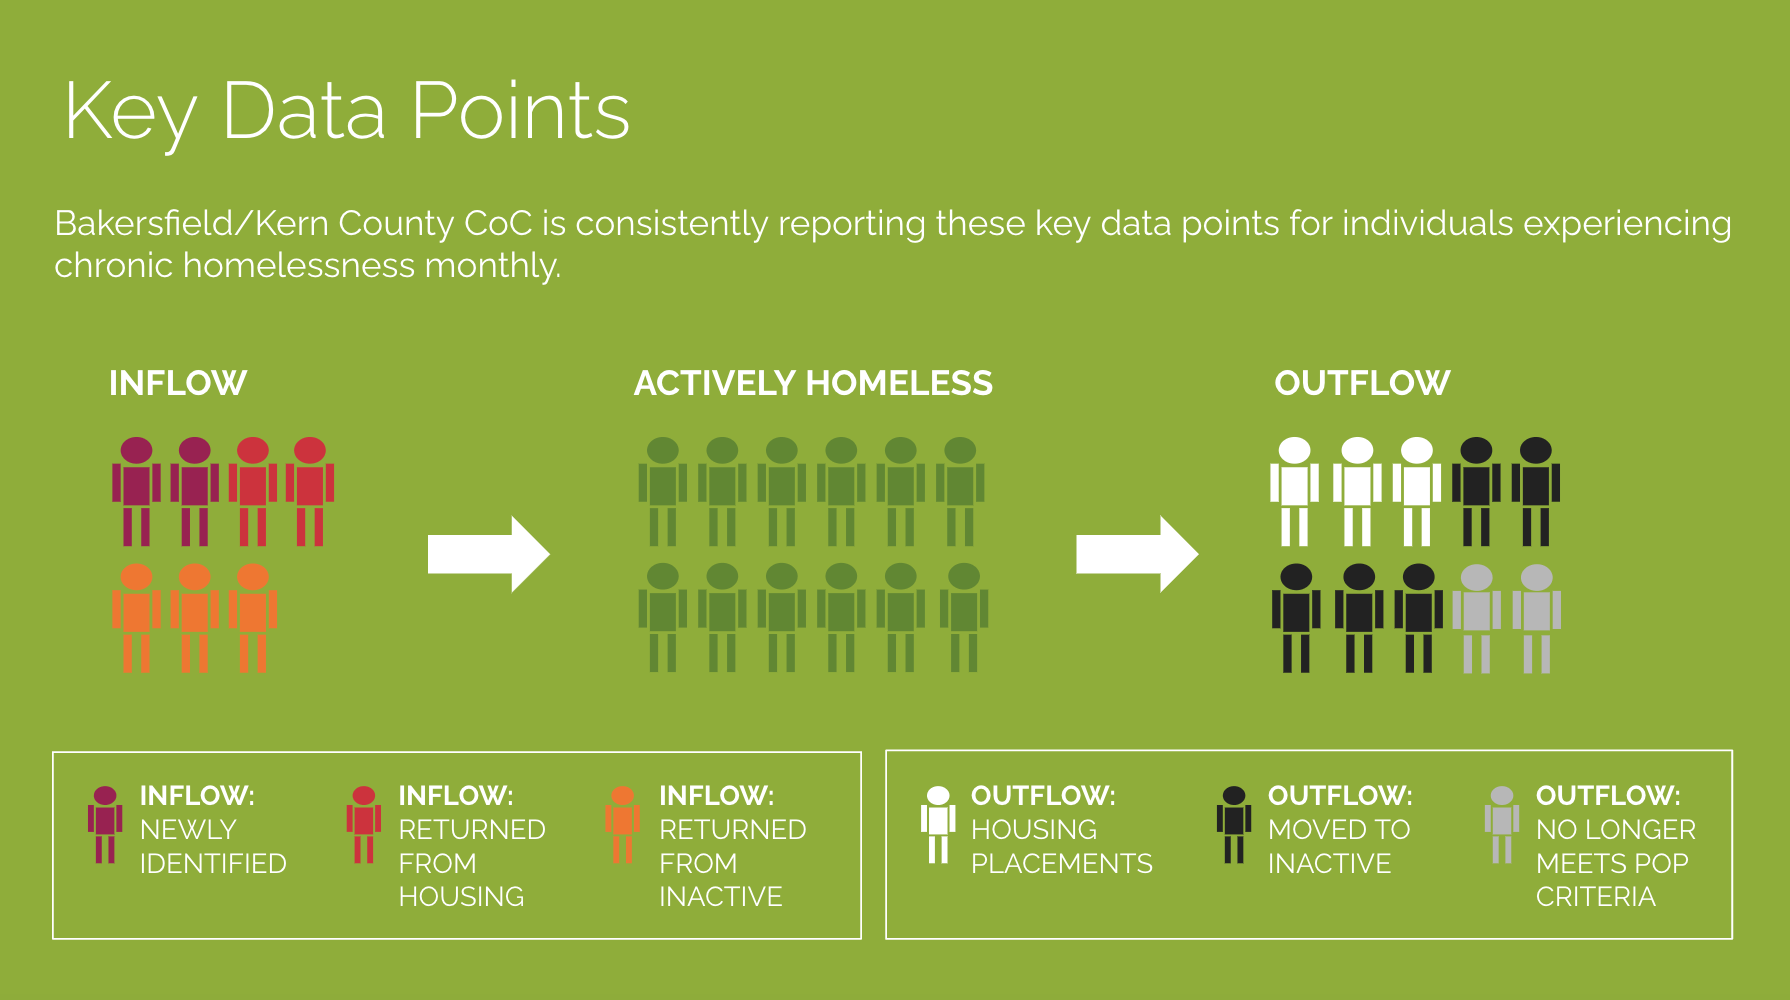 Key Data Points: Inflow, Actively Homeless, and Outflow  Bakersfield/Kern County CoC is consistently reporting these key data points for individuals experiencing homelessness monthly.